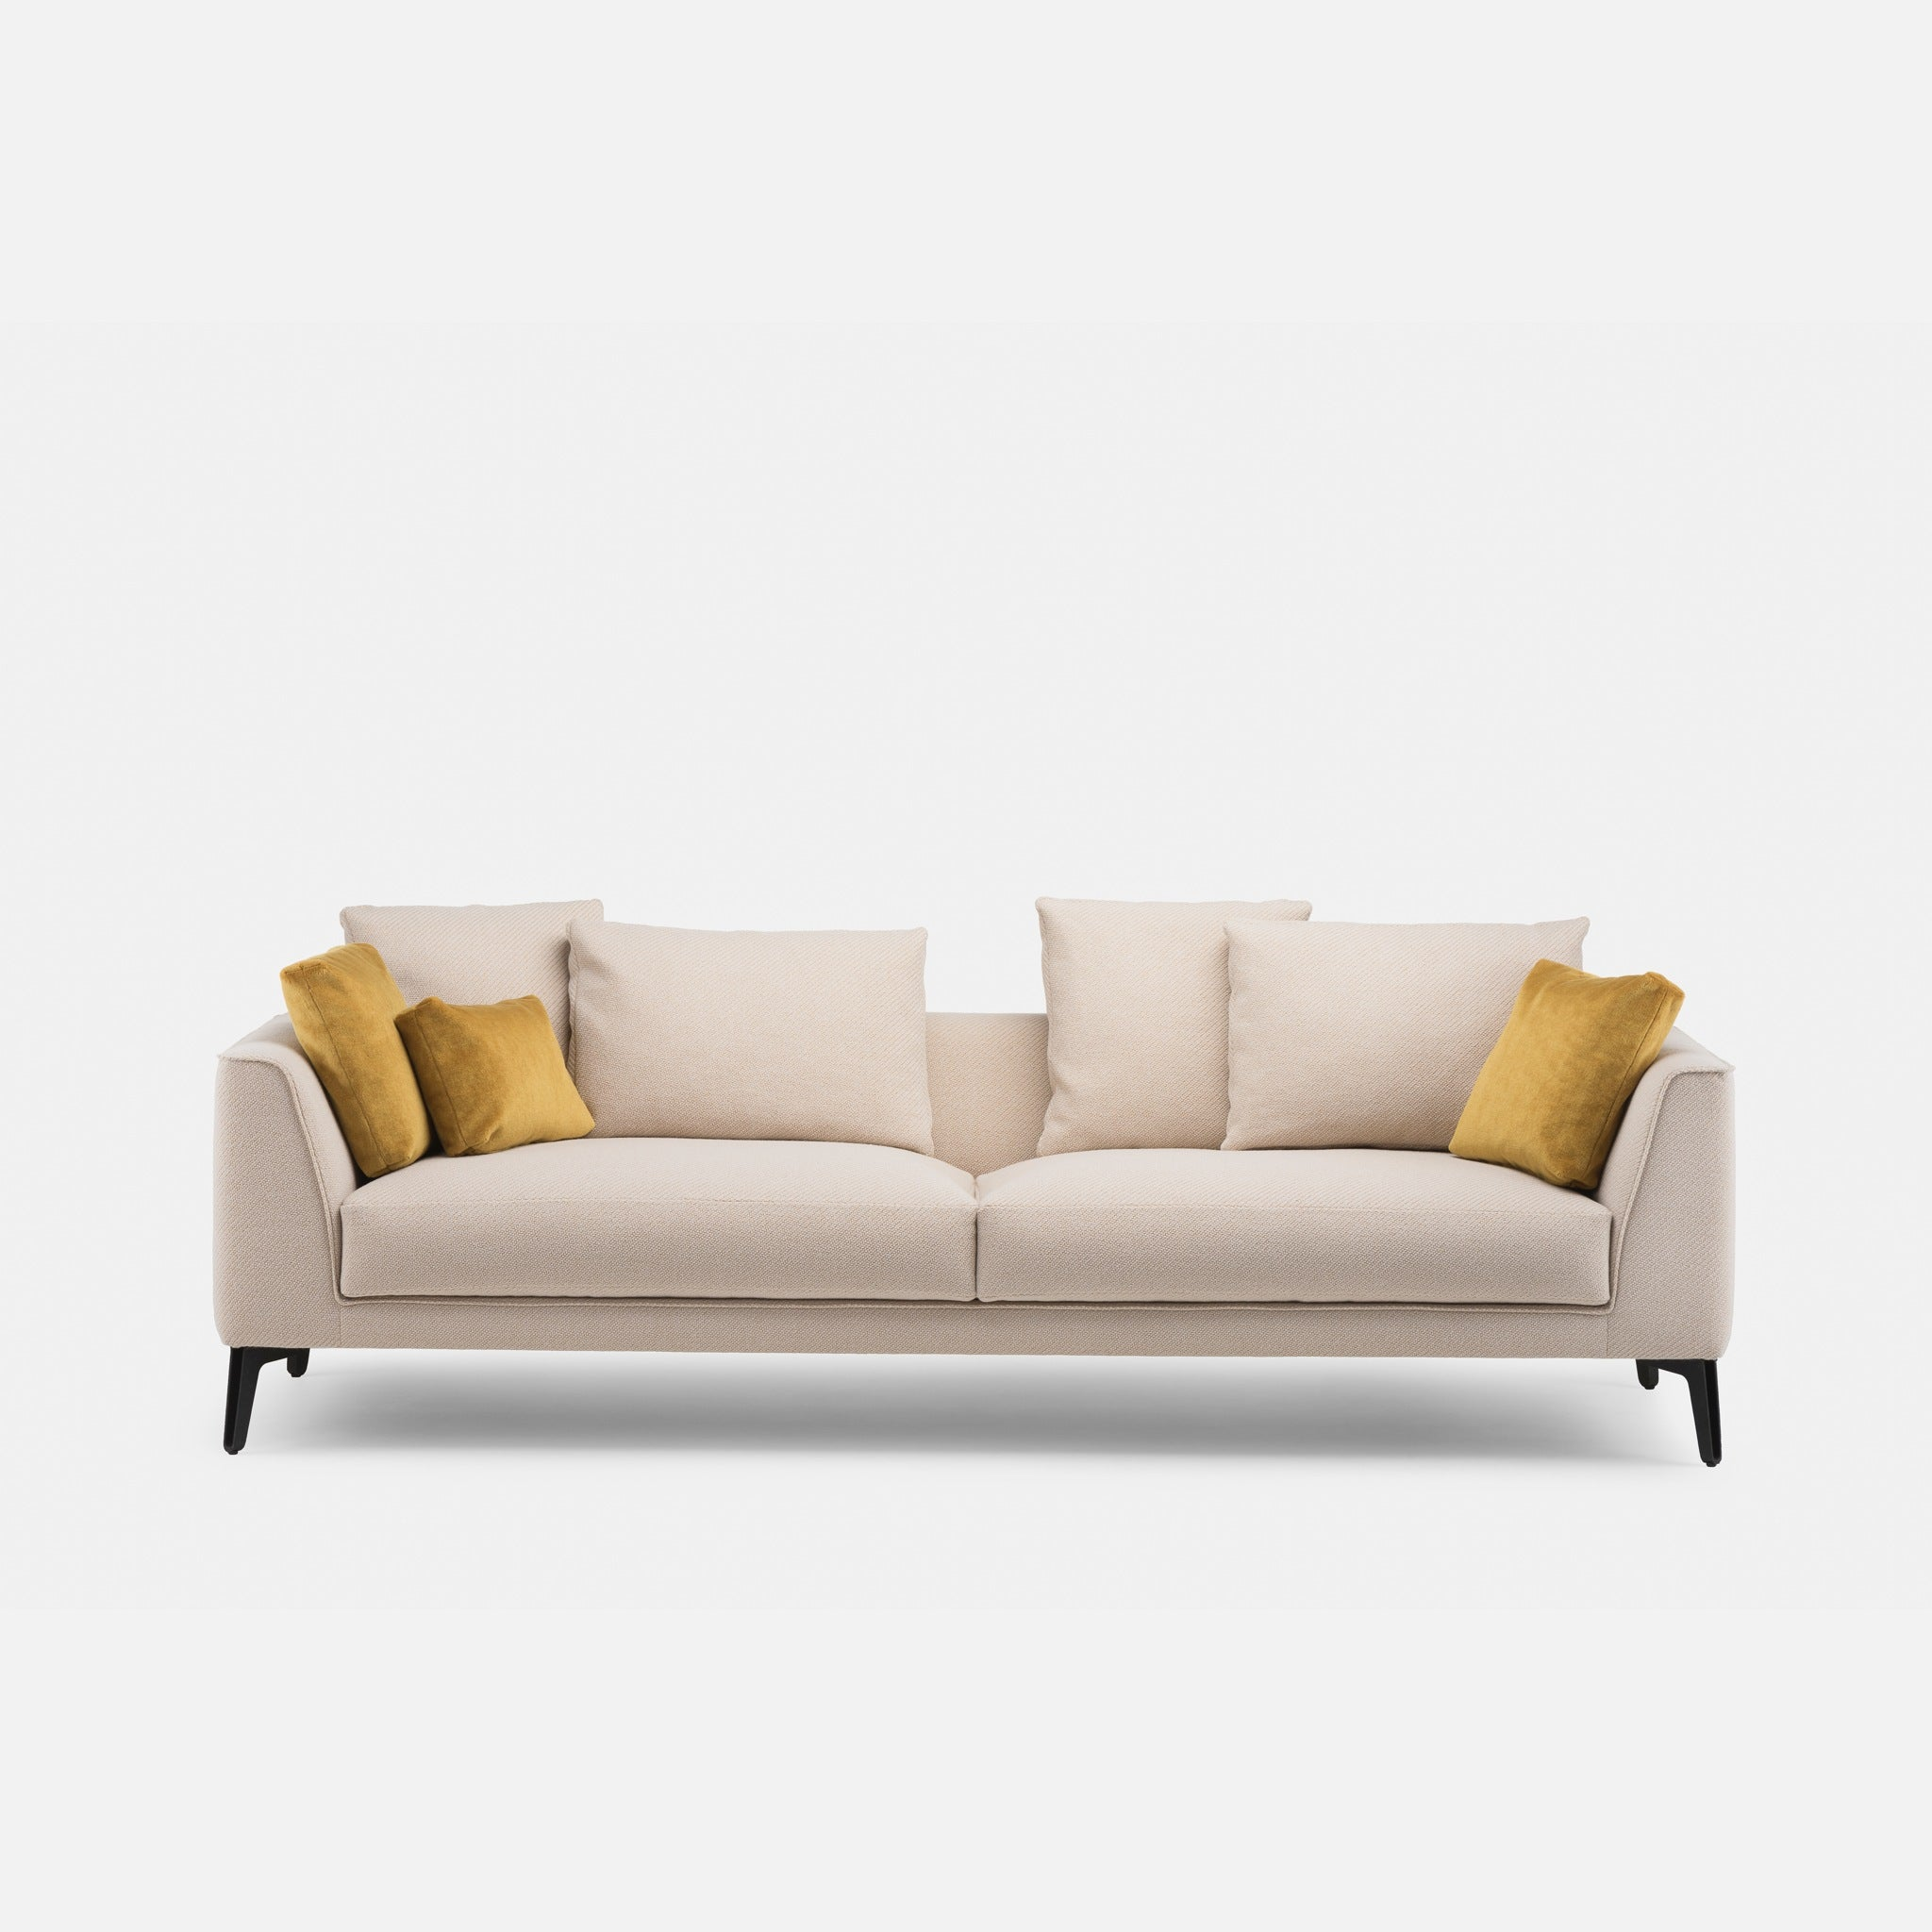 sofa upholstery west london standard dimensions of a table mcqueen by matthew hilton  haus